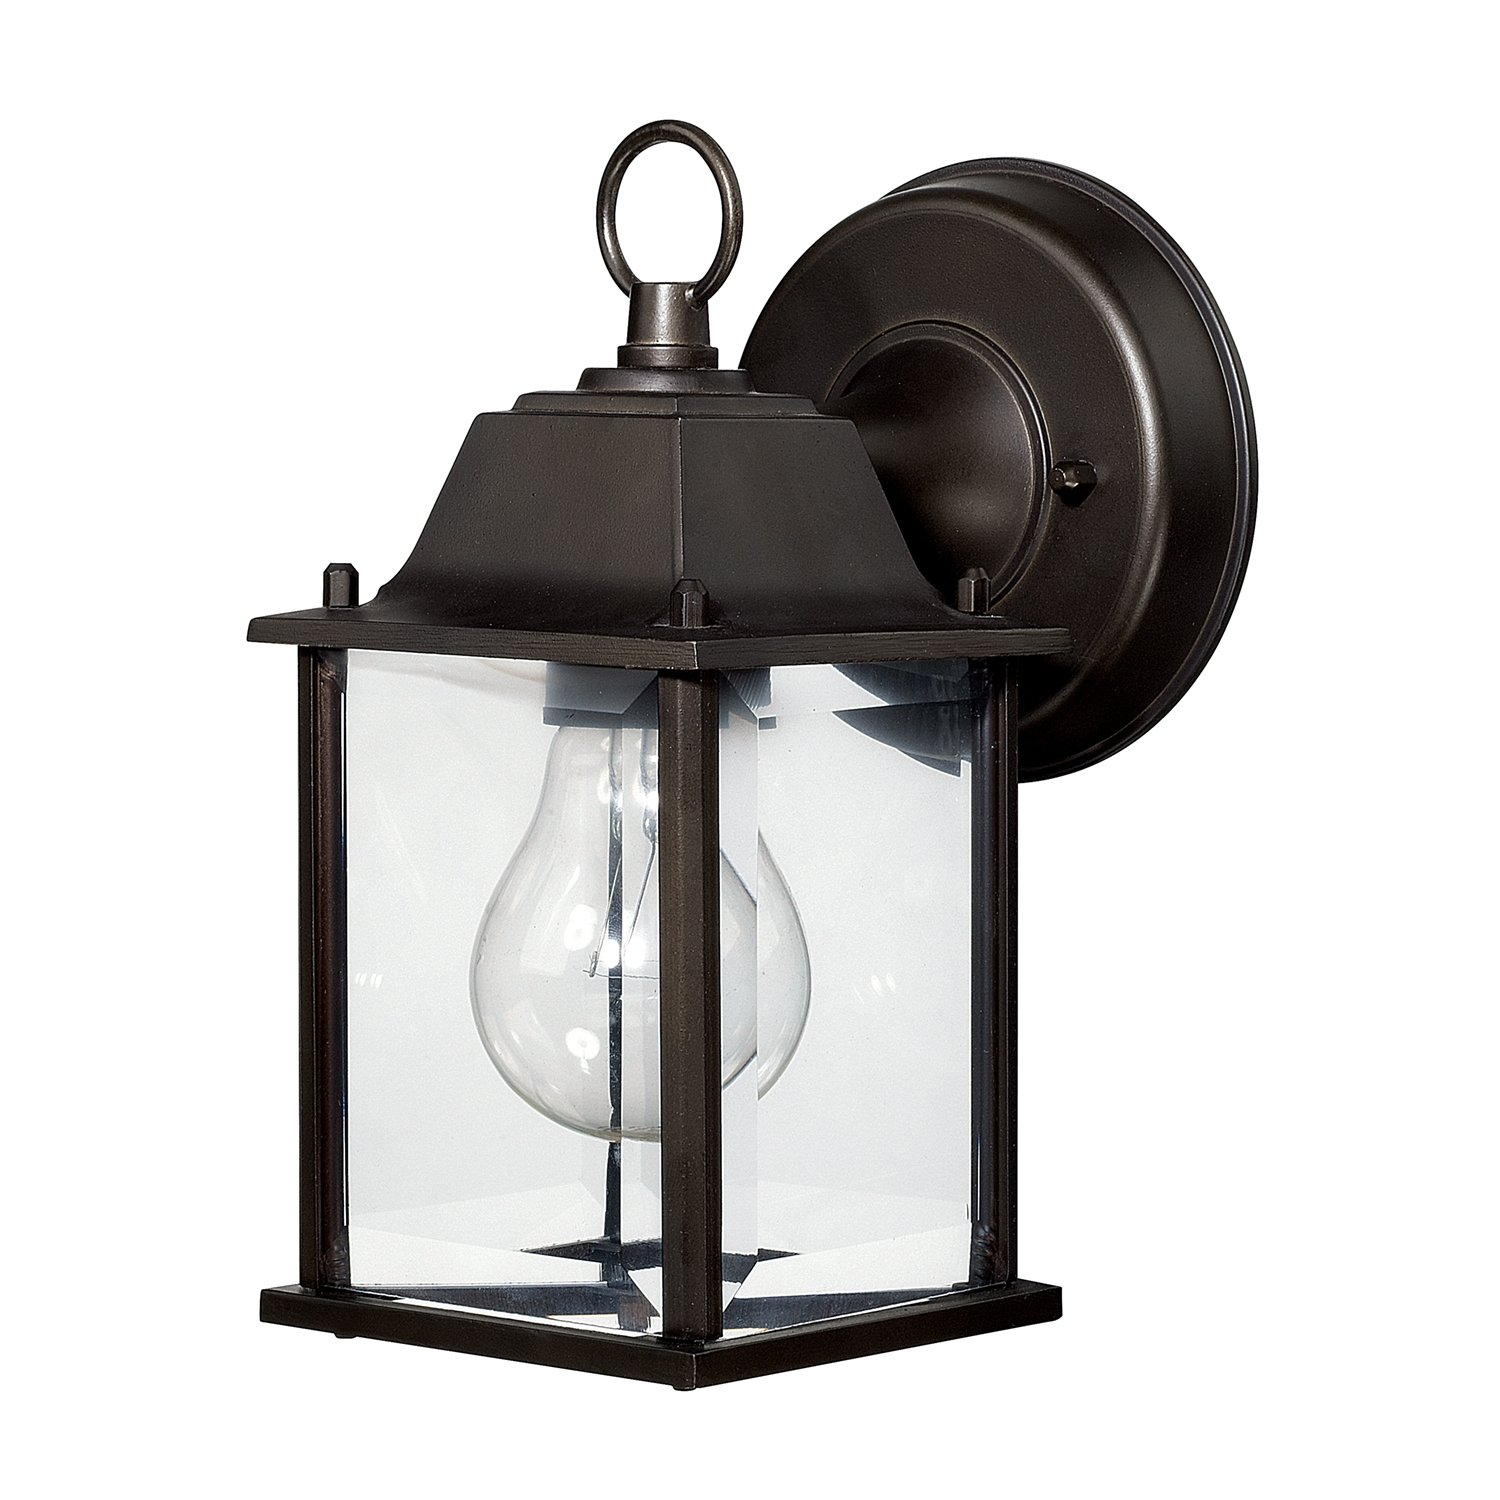 Cast Outdoor Lantern | Capital Lighting Fixture Company for Wall Mounted Outdoor Lanterns (Image 3 of 20)